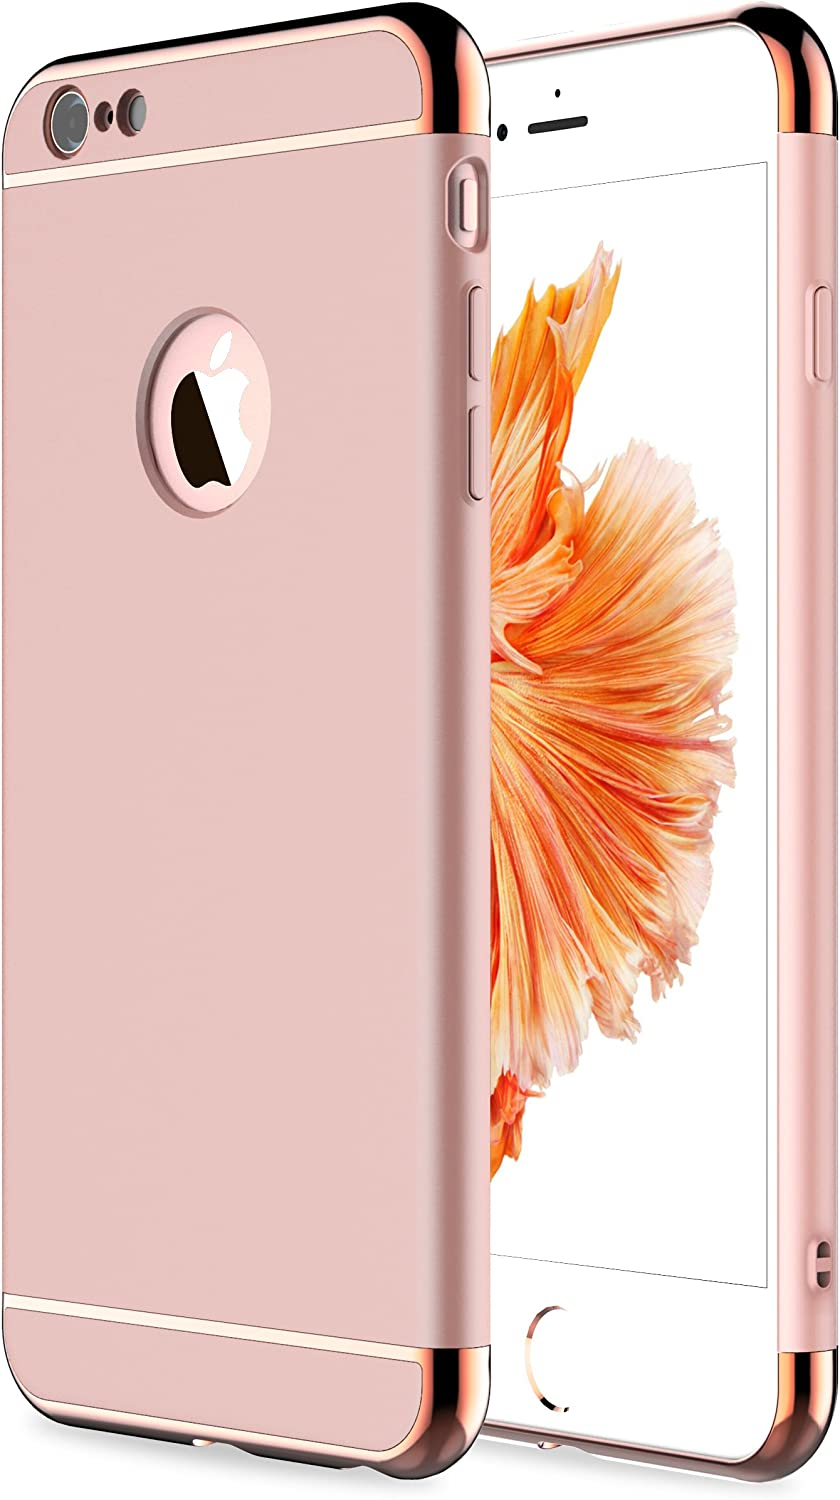 iPhone 6s Plus Case, iPhone 6 Plus Case,RORSOU 3 in 1 Ultra Thin and Slim Hard Case Coated Non Slip Matte Surface with Electroplate Frame for Apple iPhone 6/6s Plus(5.5') - Rose Gold